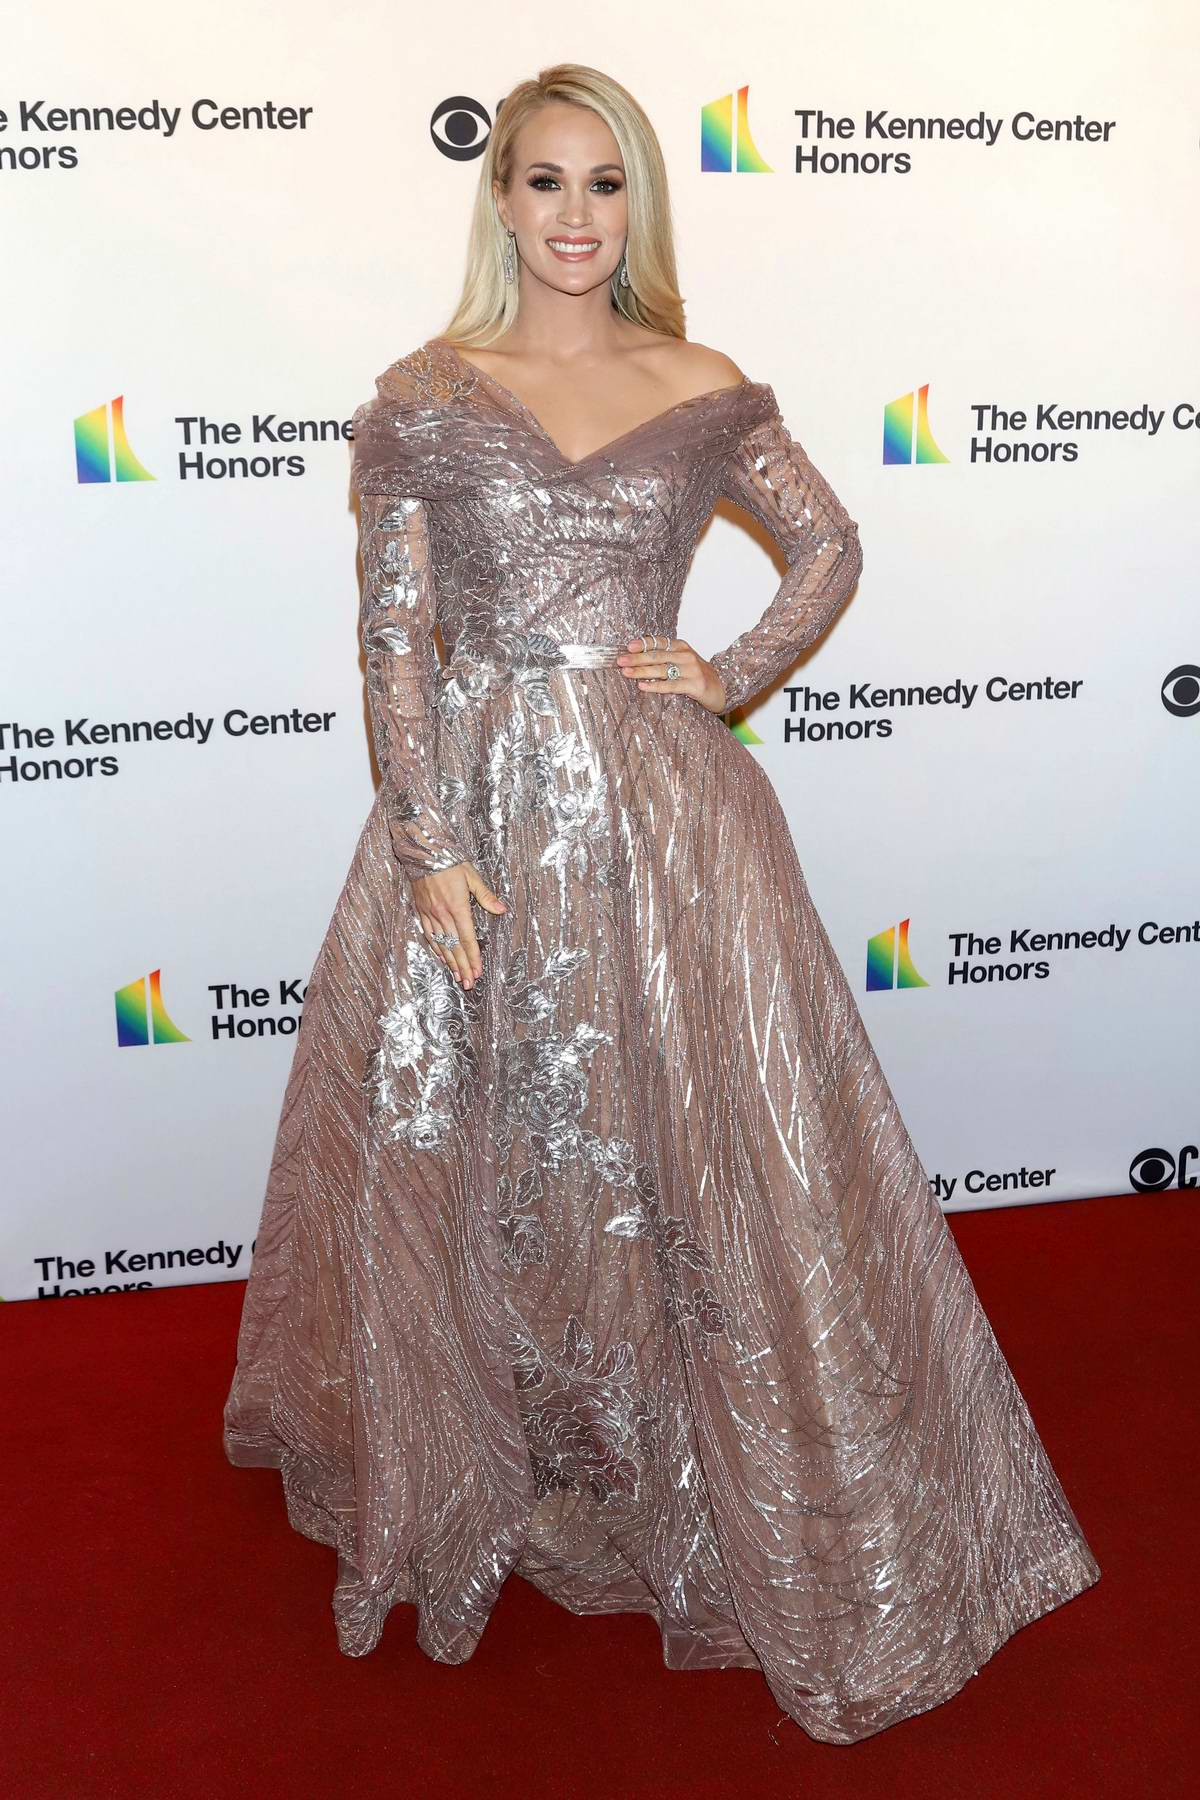 Carrie Underwood attends the 2019 Kennedy Center Honors at The Kennedy Center in Washington, D.C.